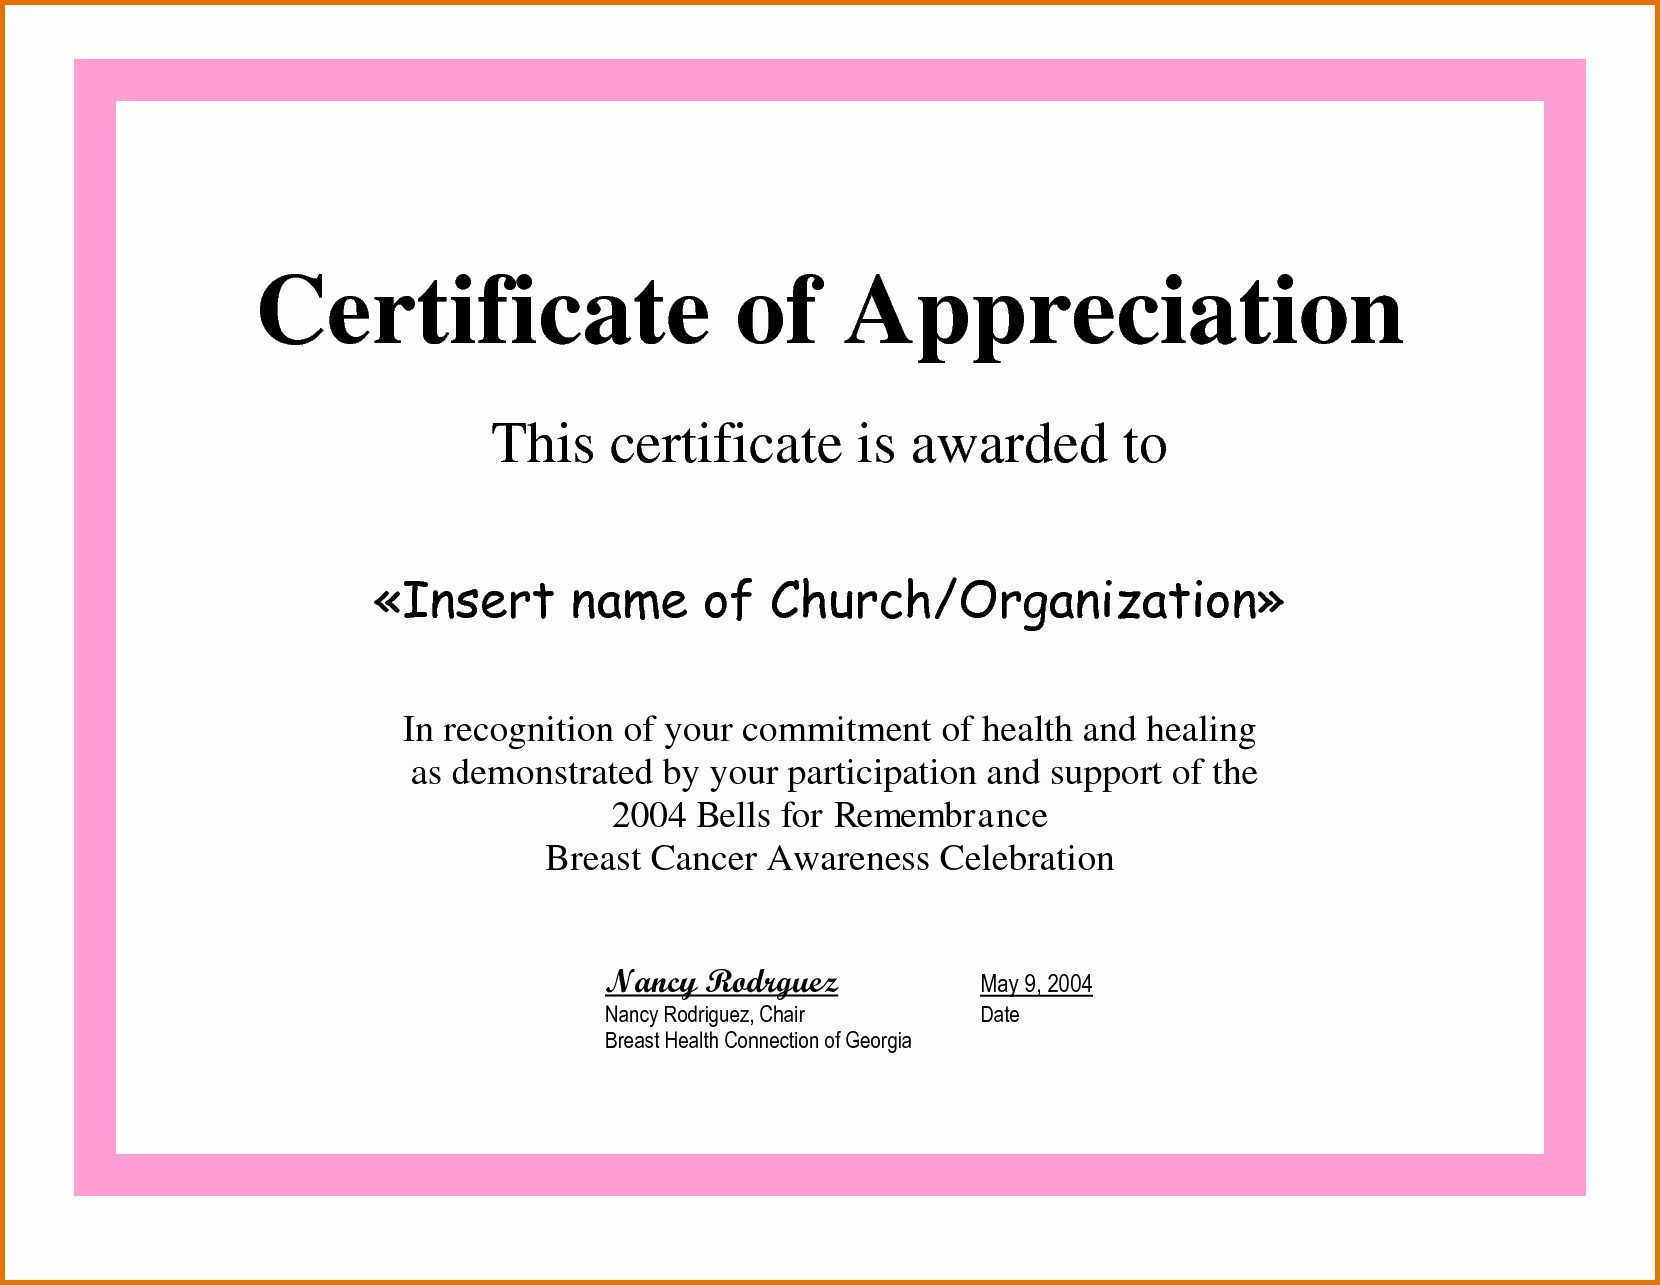 Sample Of Certificate Of Appreciation Fresh Certificate Of Appreciation Samplesreference Letters Words